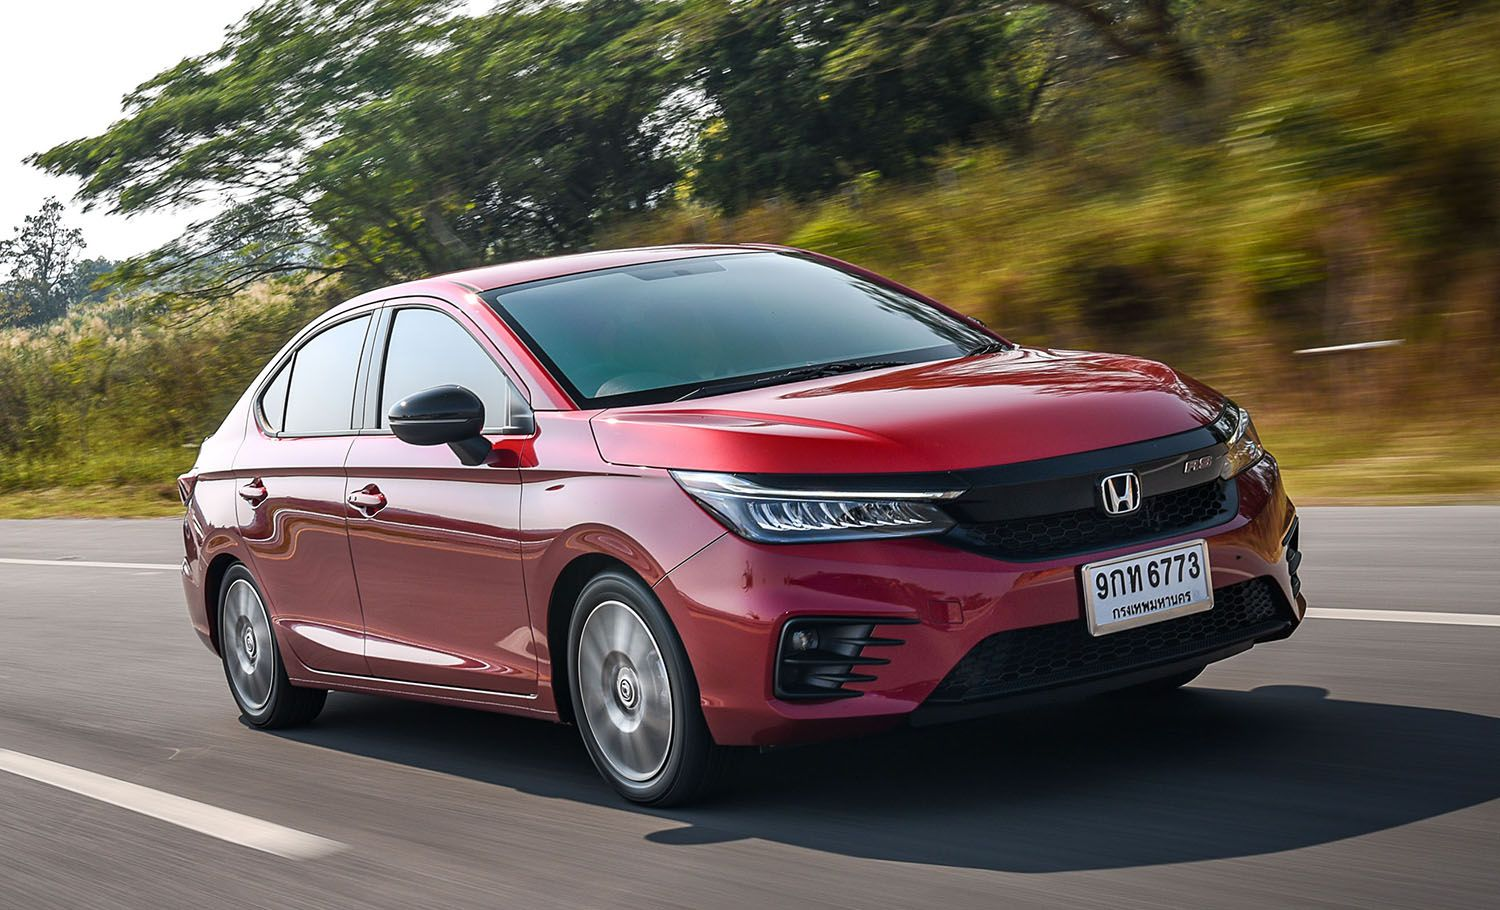 Honda City 1 0 Vtec Turbo Rs 2020 Review ในป 2020